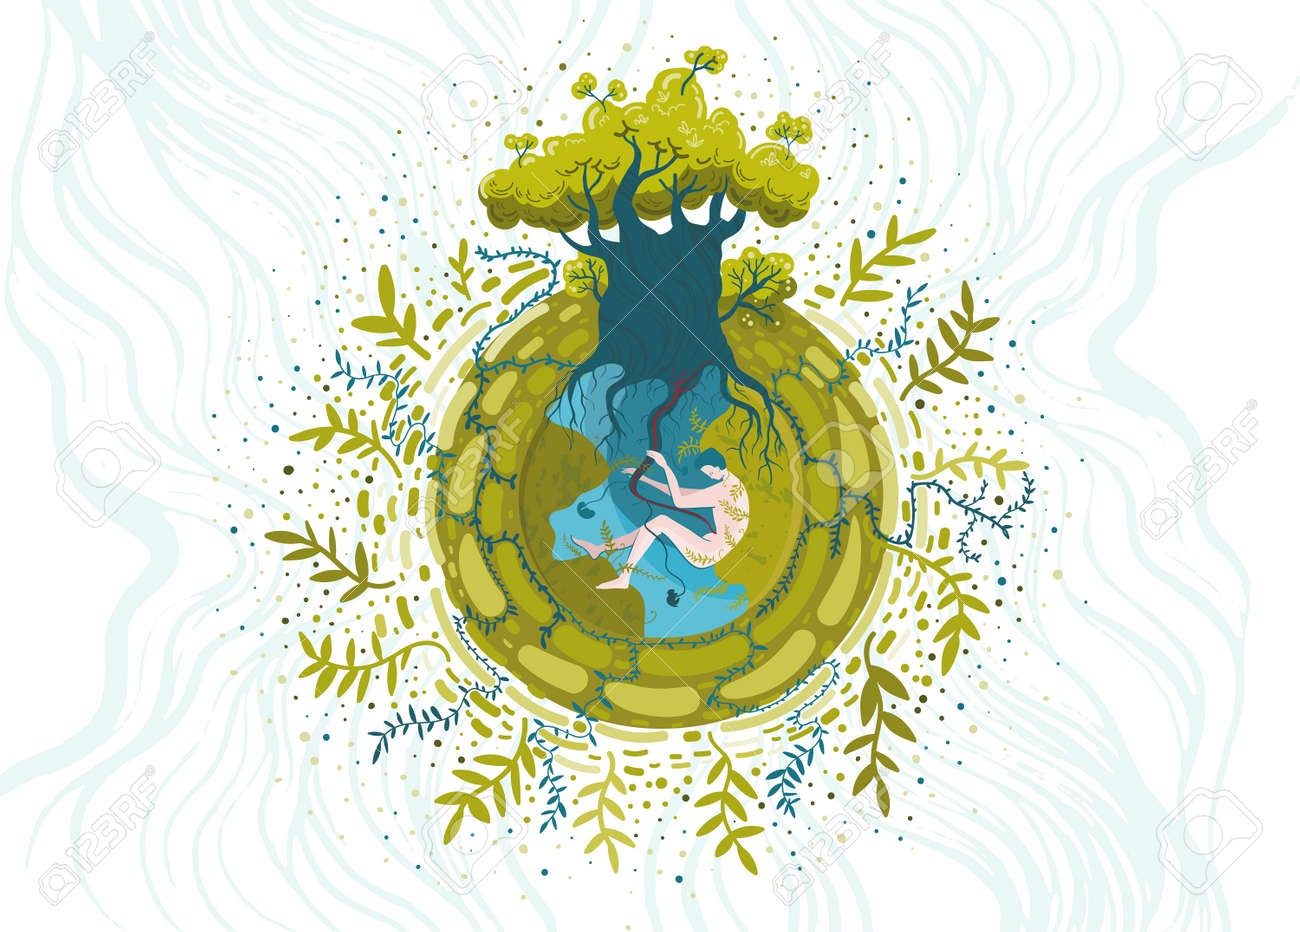 Conceptual vector illustration on ecological and nature protection theme. You are part of nature, take care of it. - 171670830